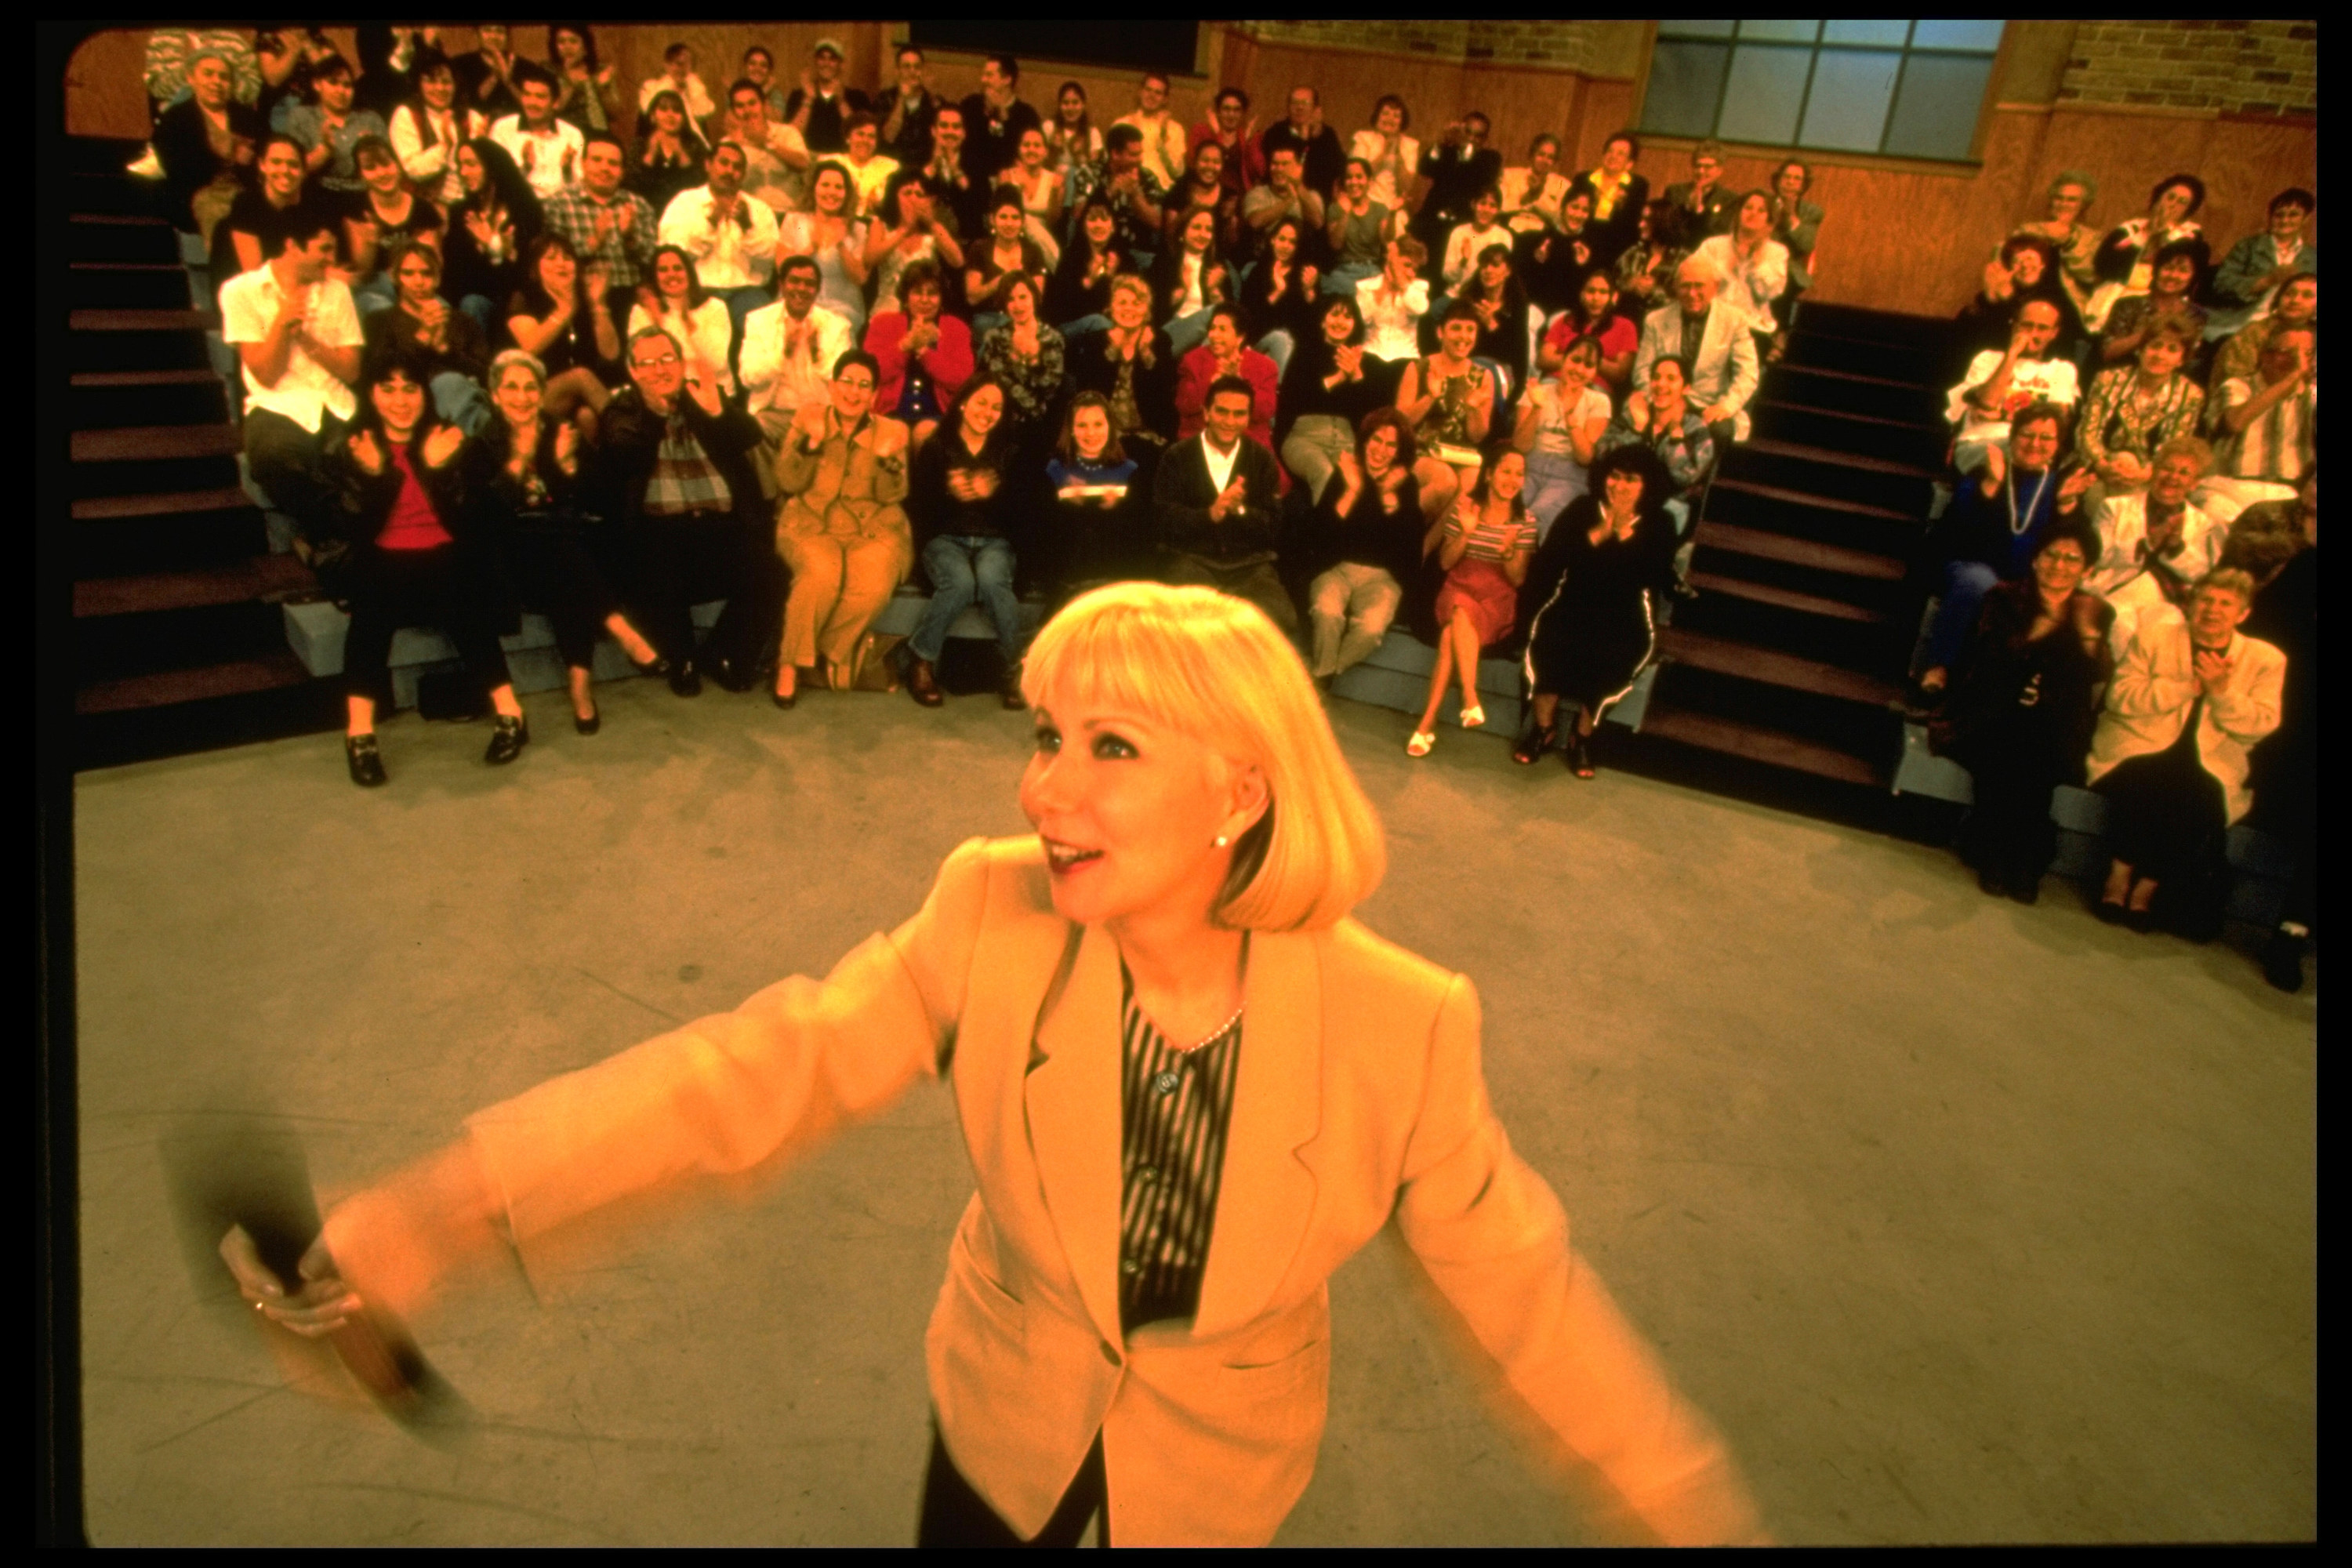 A photo Cristina Saralegui dancing with the audience behind her applauding on the set of her show